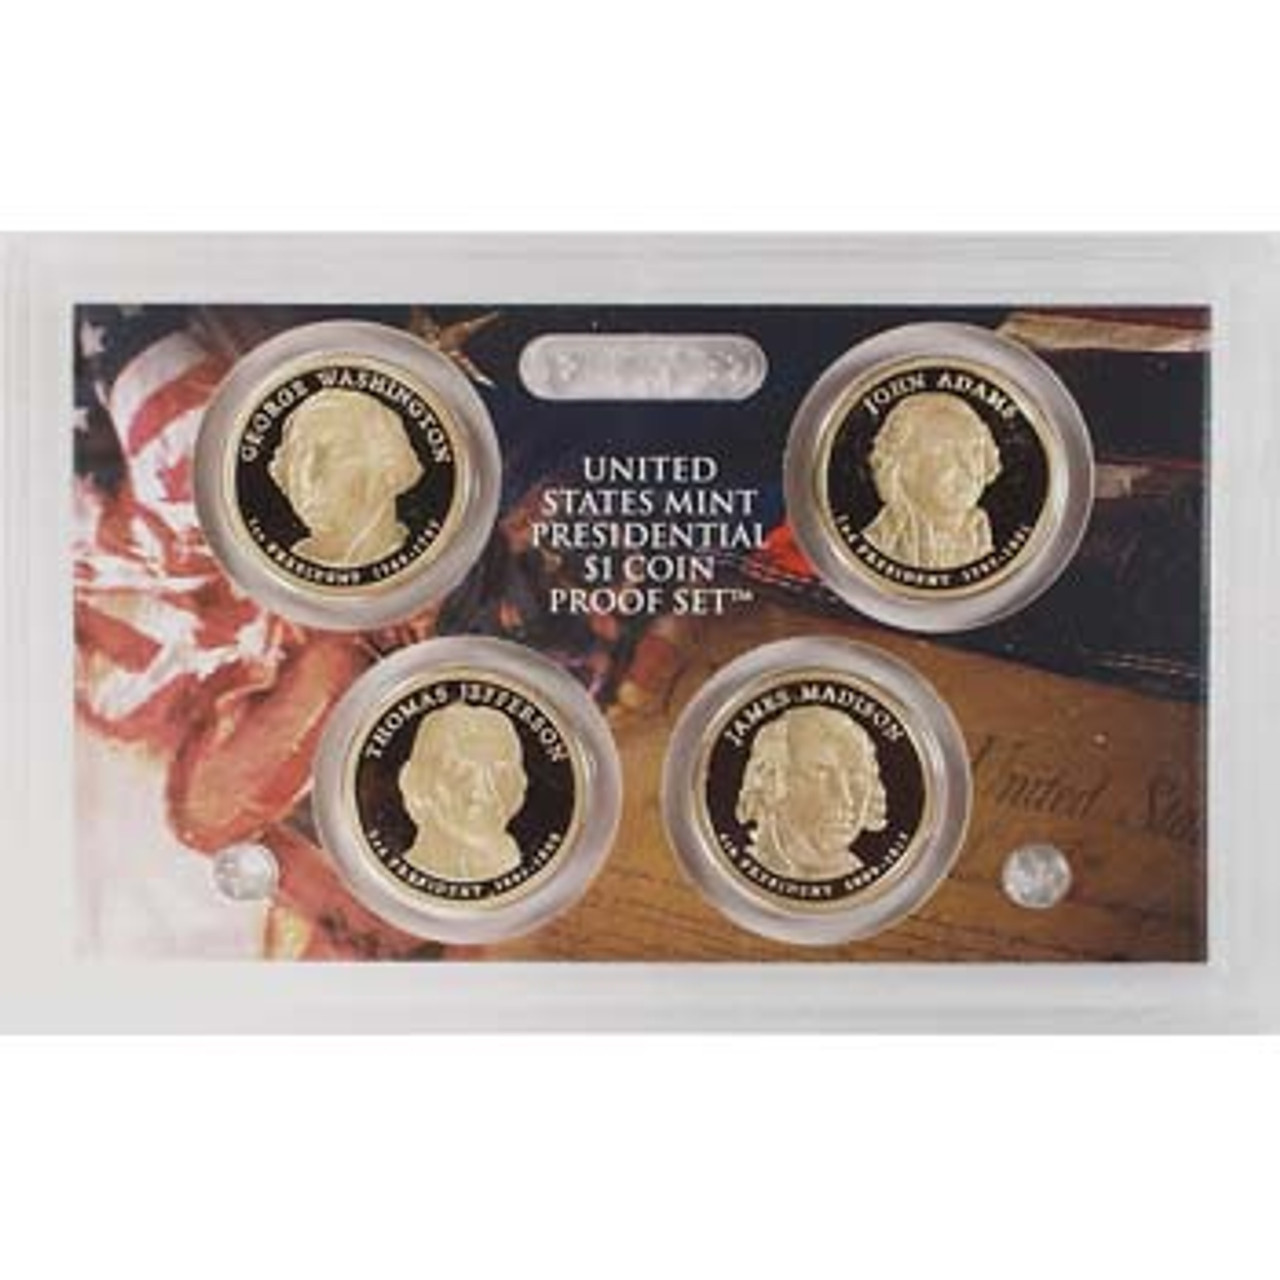 2007 Presidential Dollar Proof Set 4 Coin Image 1